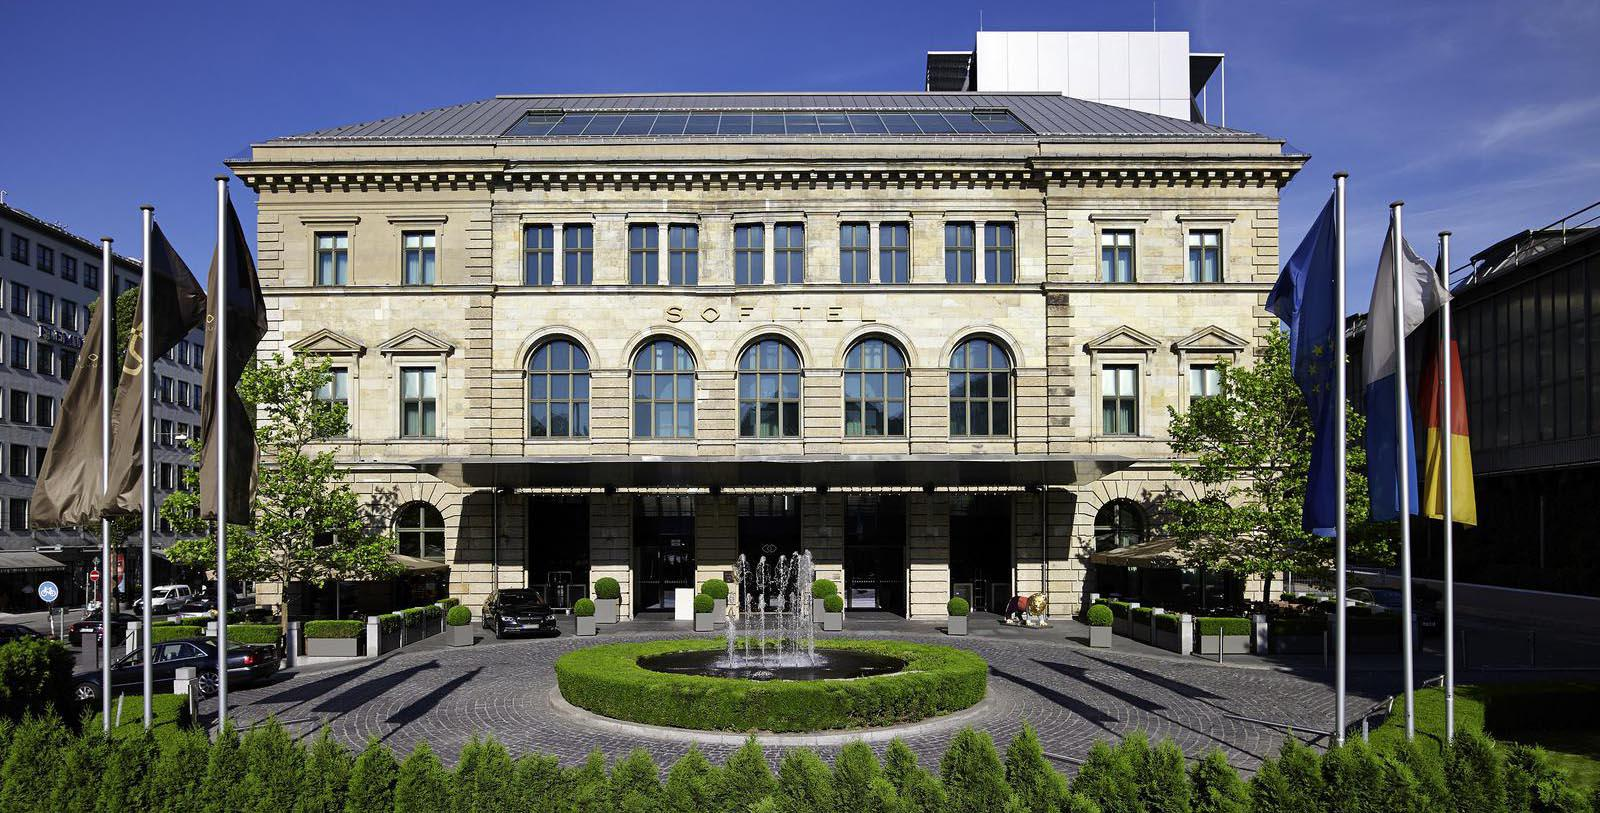 Image of Hotel Exterior Sofitel Munich Bayerpost, 1896, Member of Historic Hotels Worldwide, in Munich, Germany, Special Offers, Discounted Rates, Families, Romantic Escape, Honeymoons, Anniversaries, Reunions